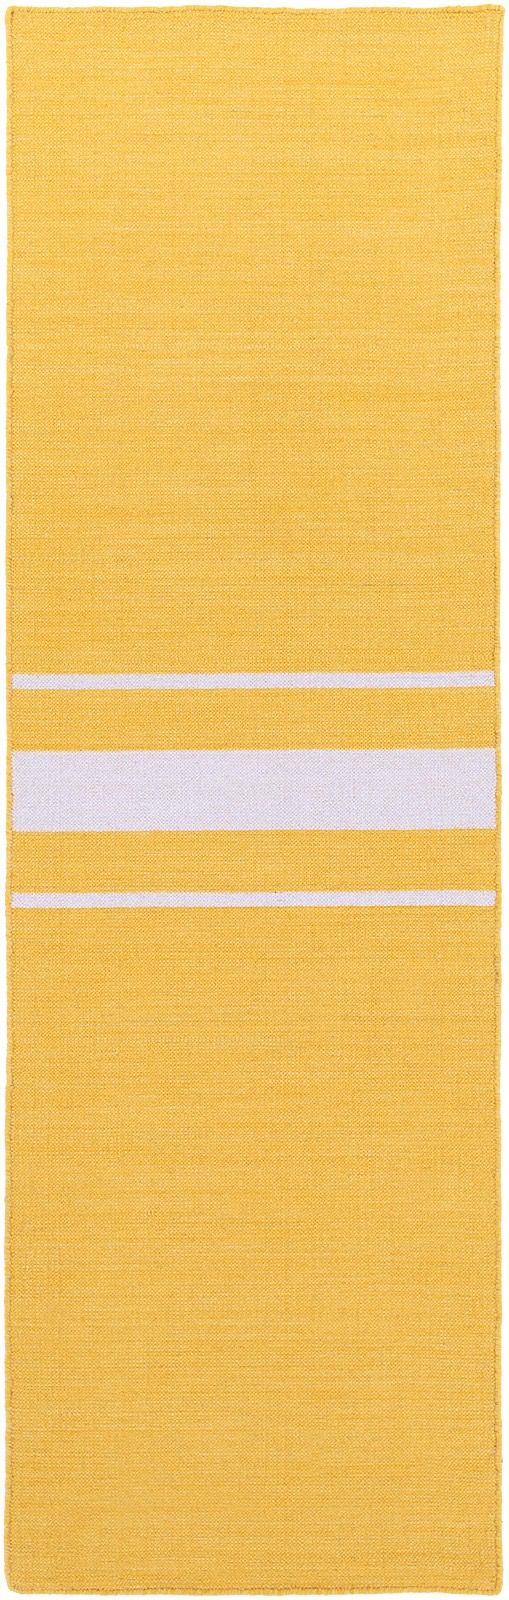 surya colton solid/striped area rug collection